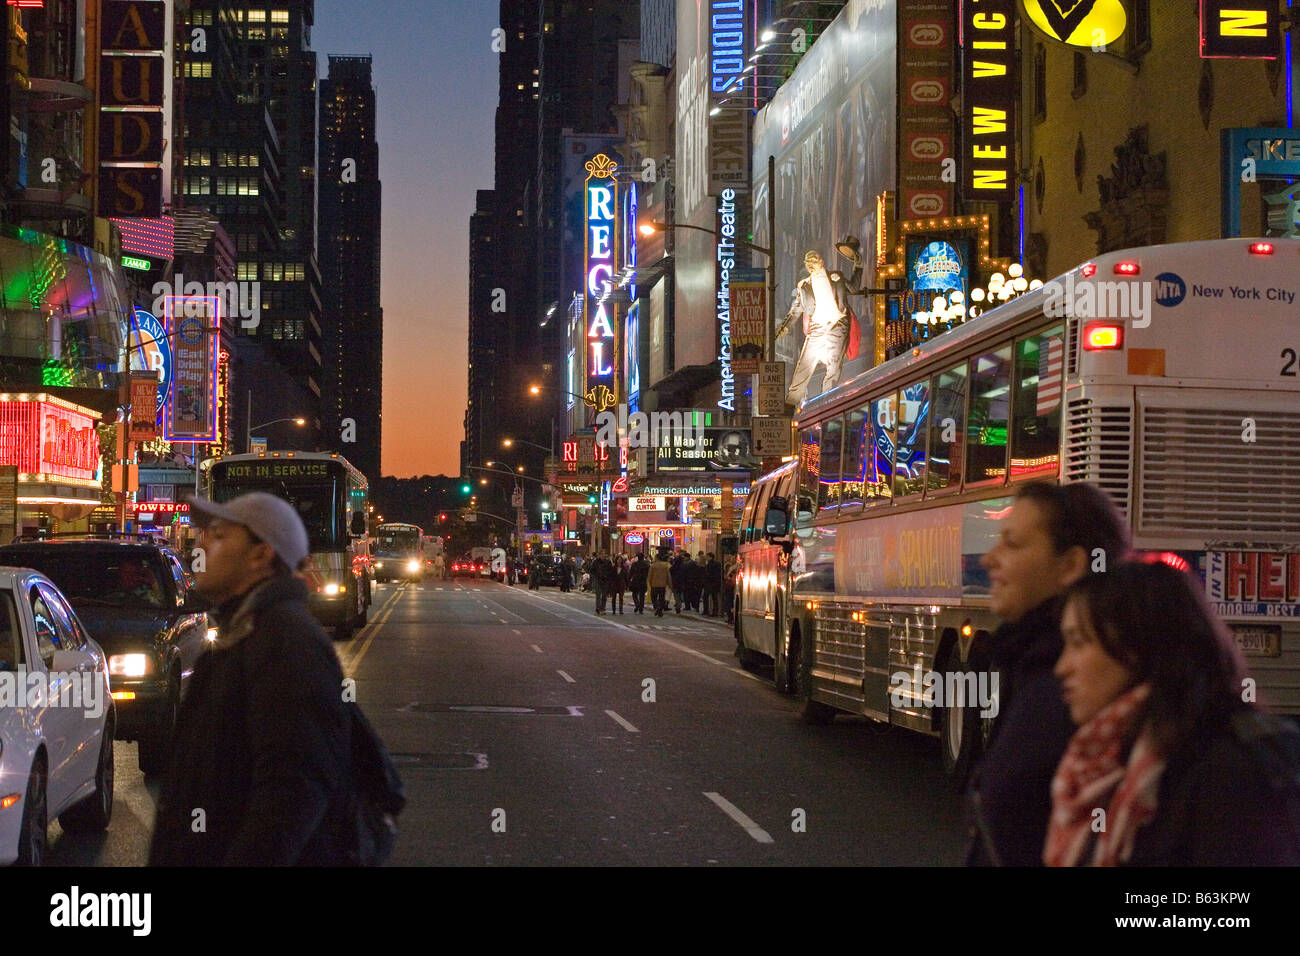 42nd Street Broadway New York USA at dusk - Stock Image